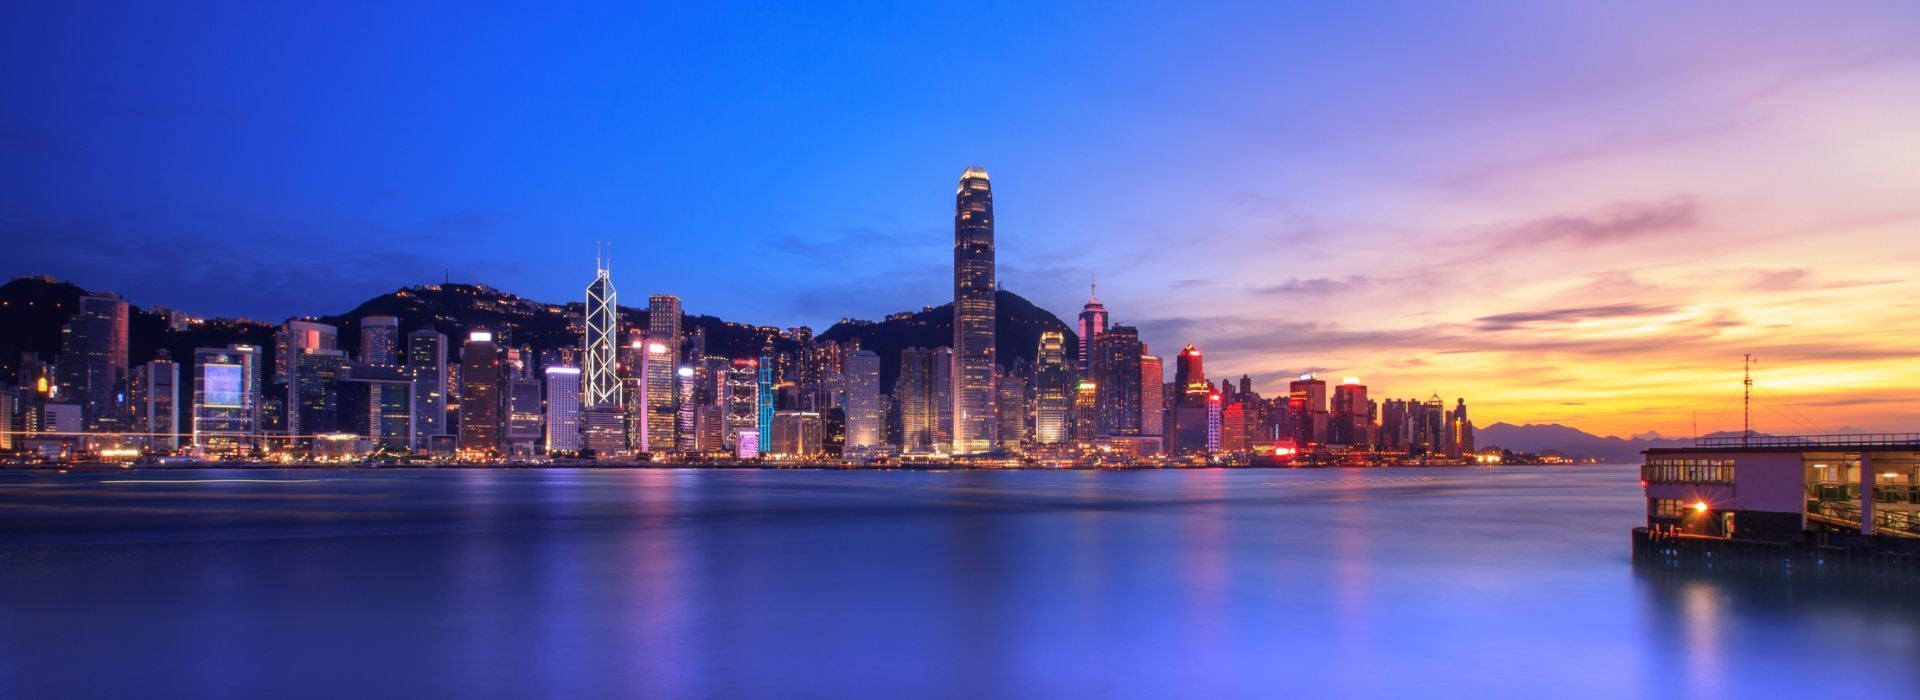 Sightseeing, attractions, culture and history Tours in Hong Kong